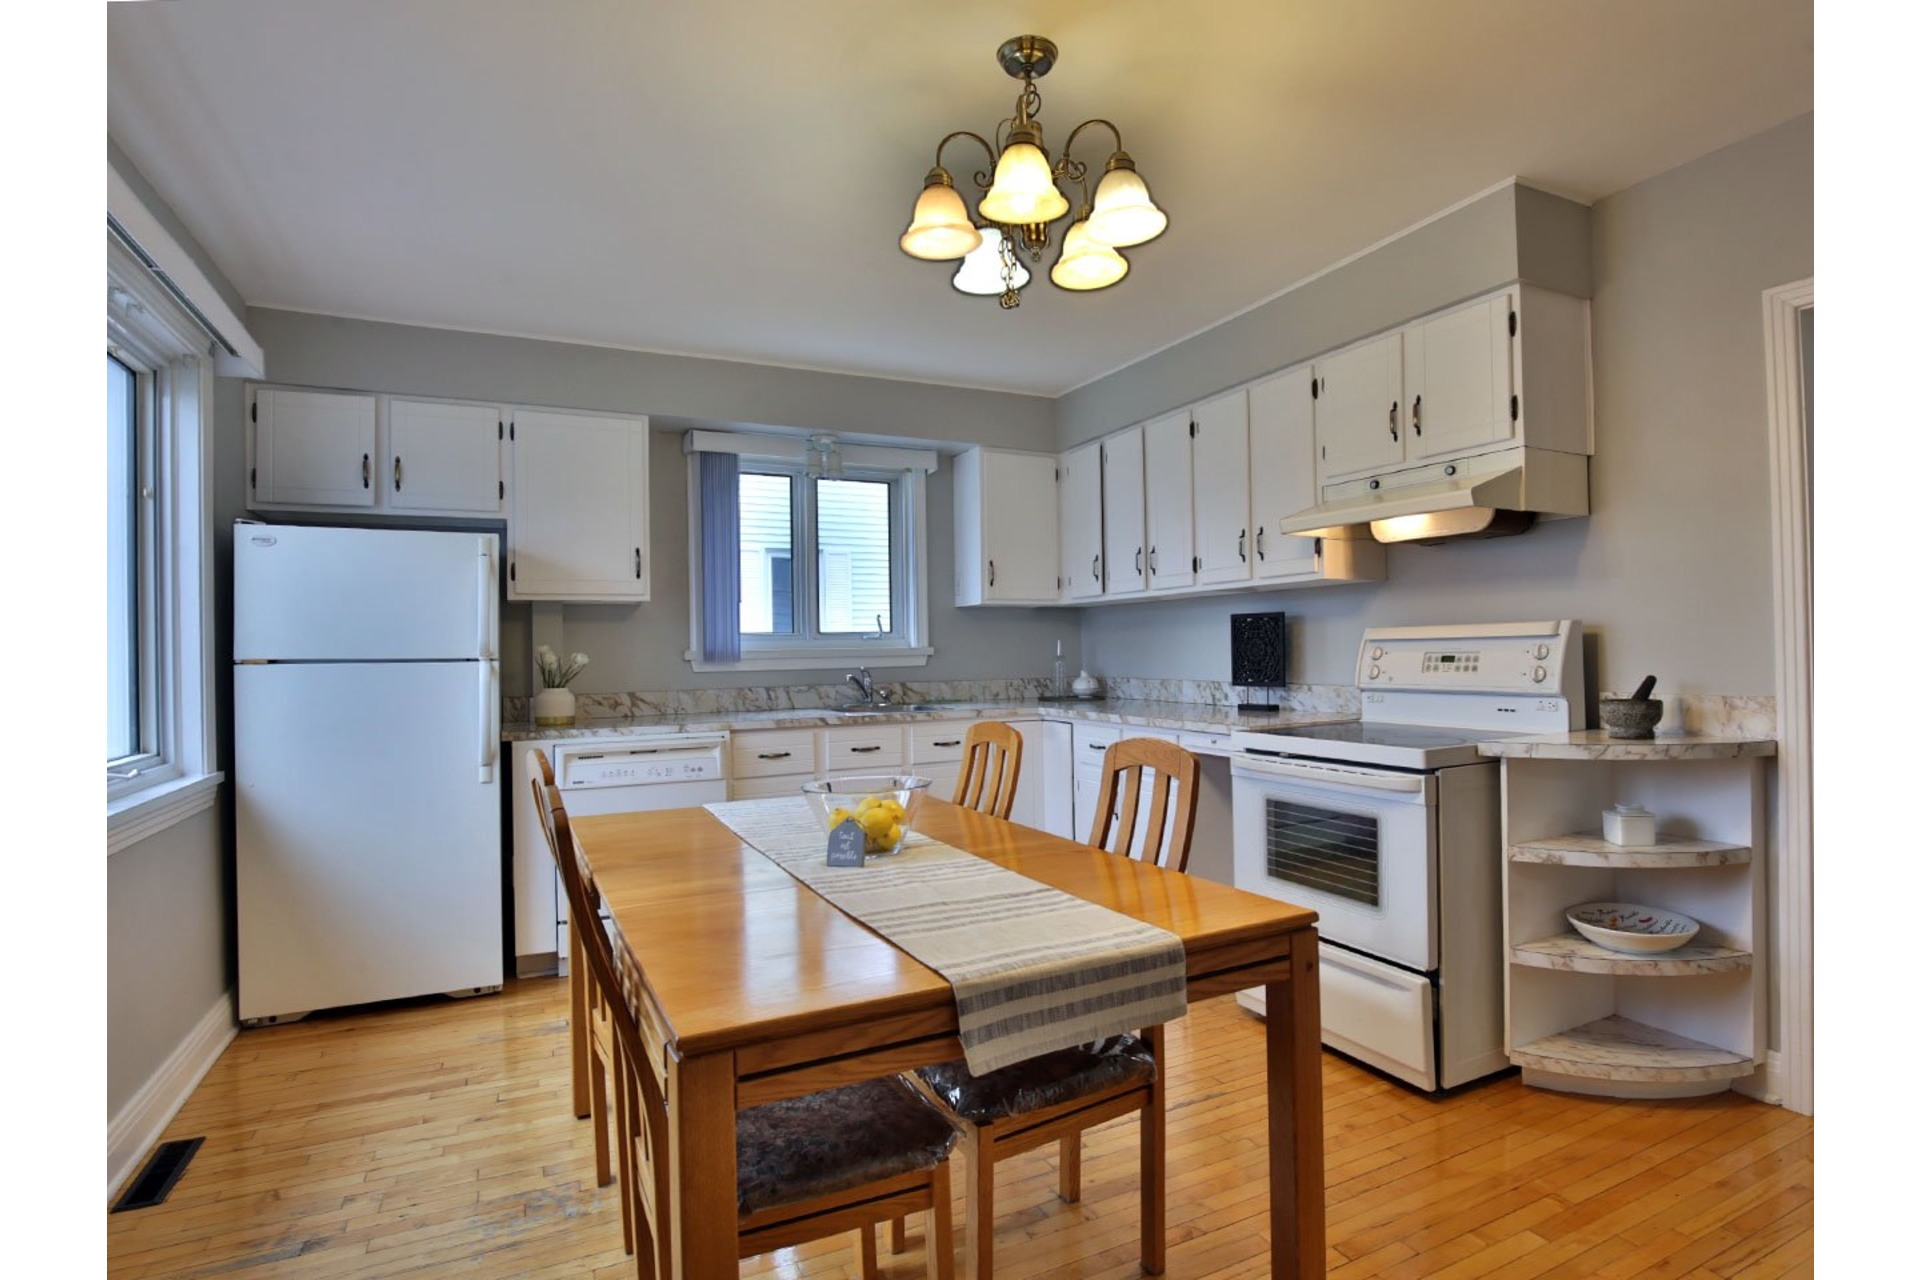 image 3 - House For sale Saint-Hyacinthe - 11 rooms